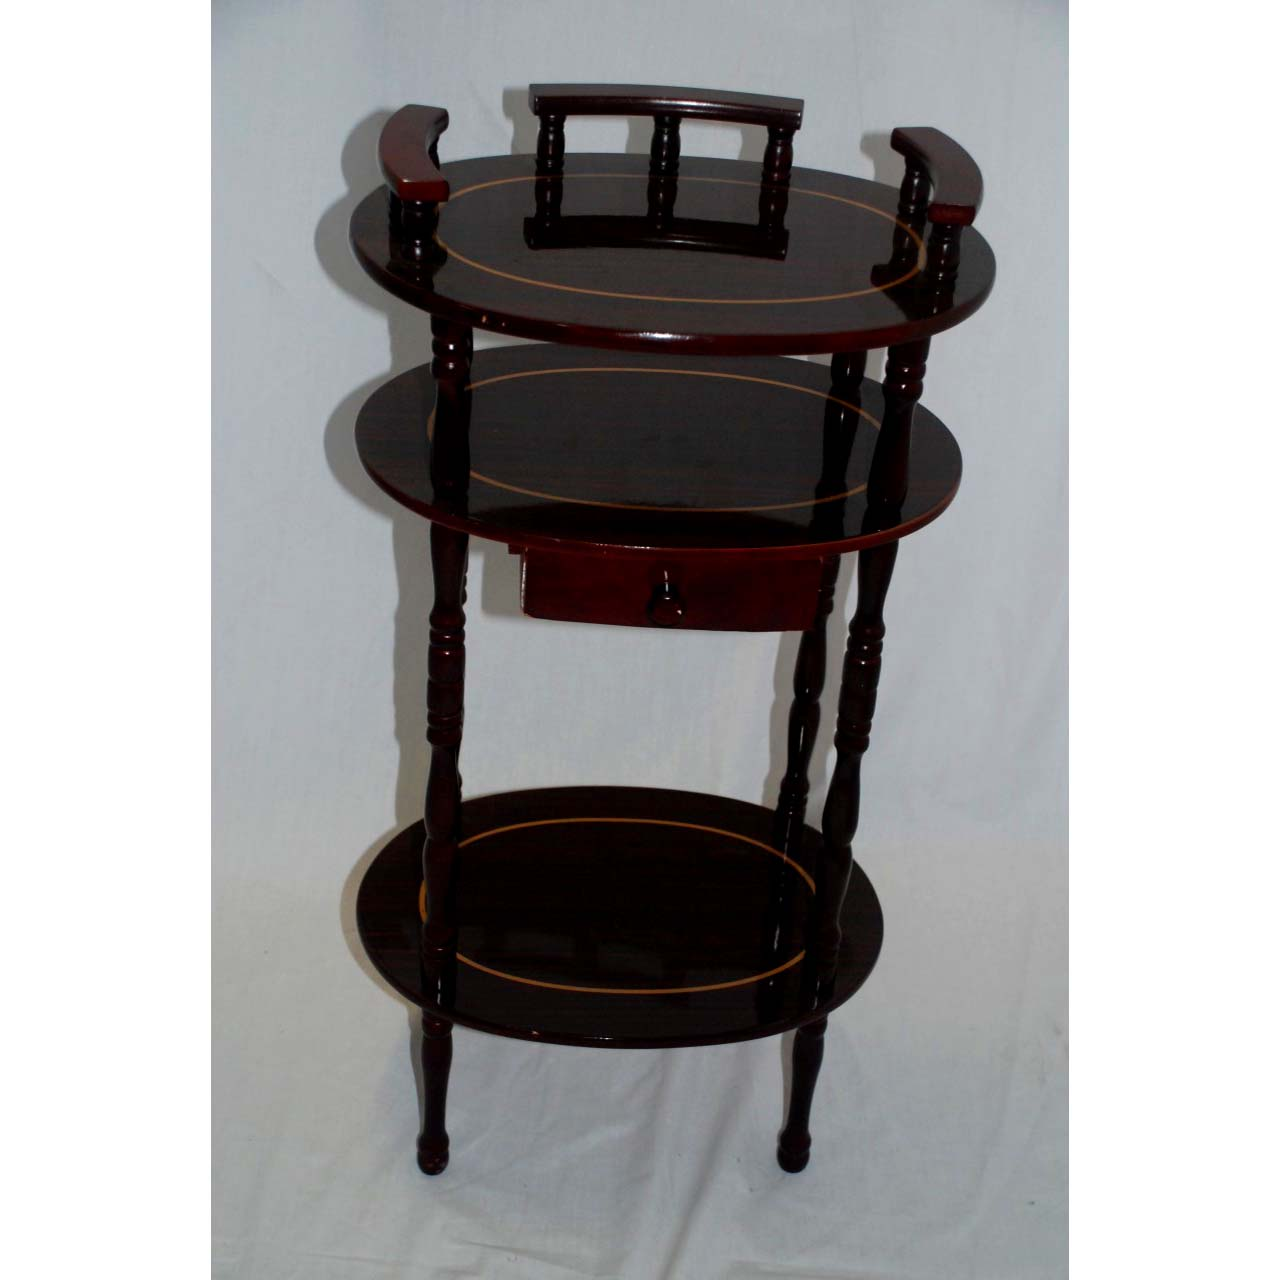 3-Tier Telephone Stand